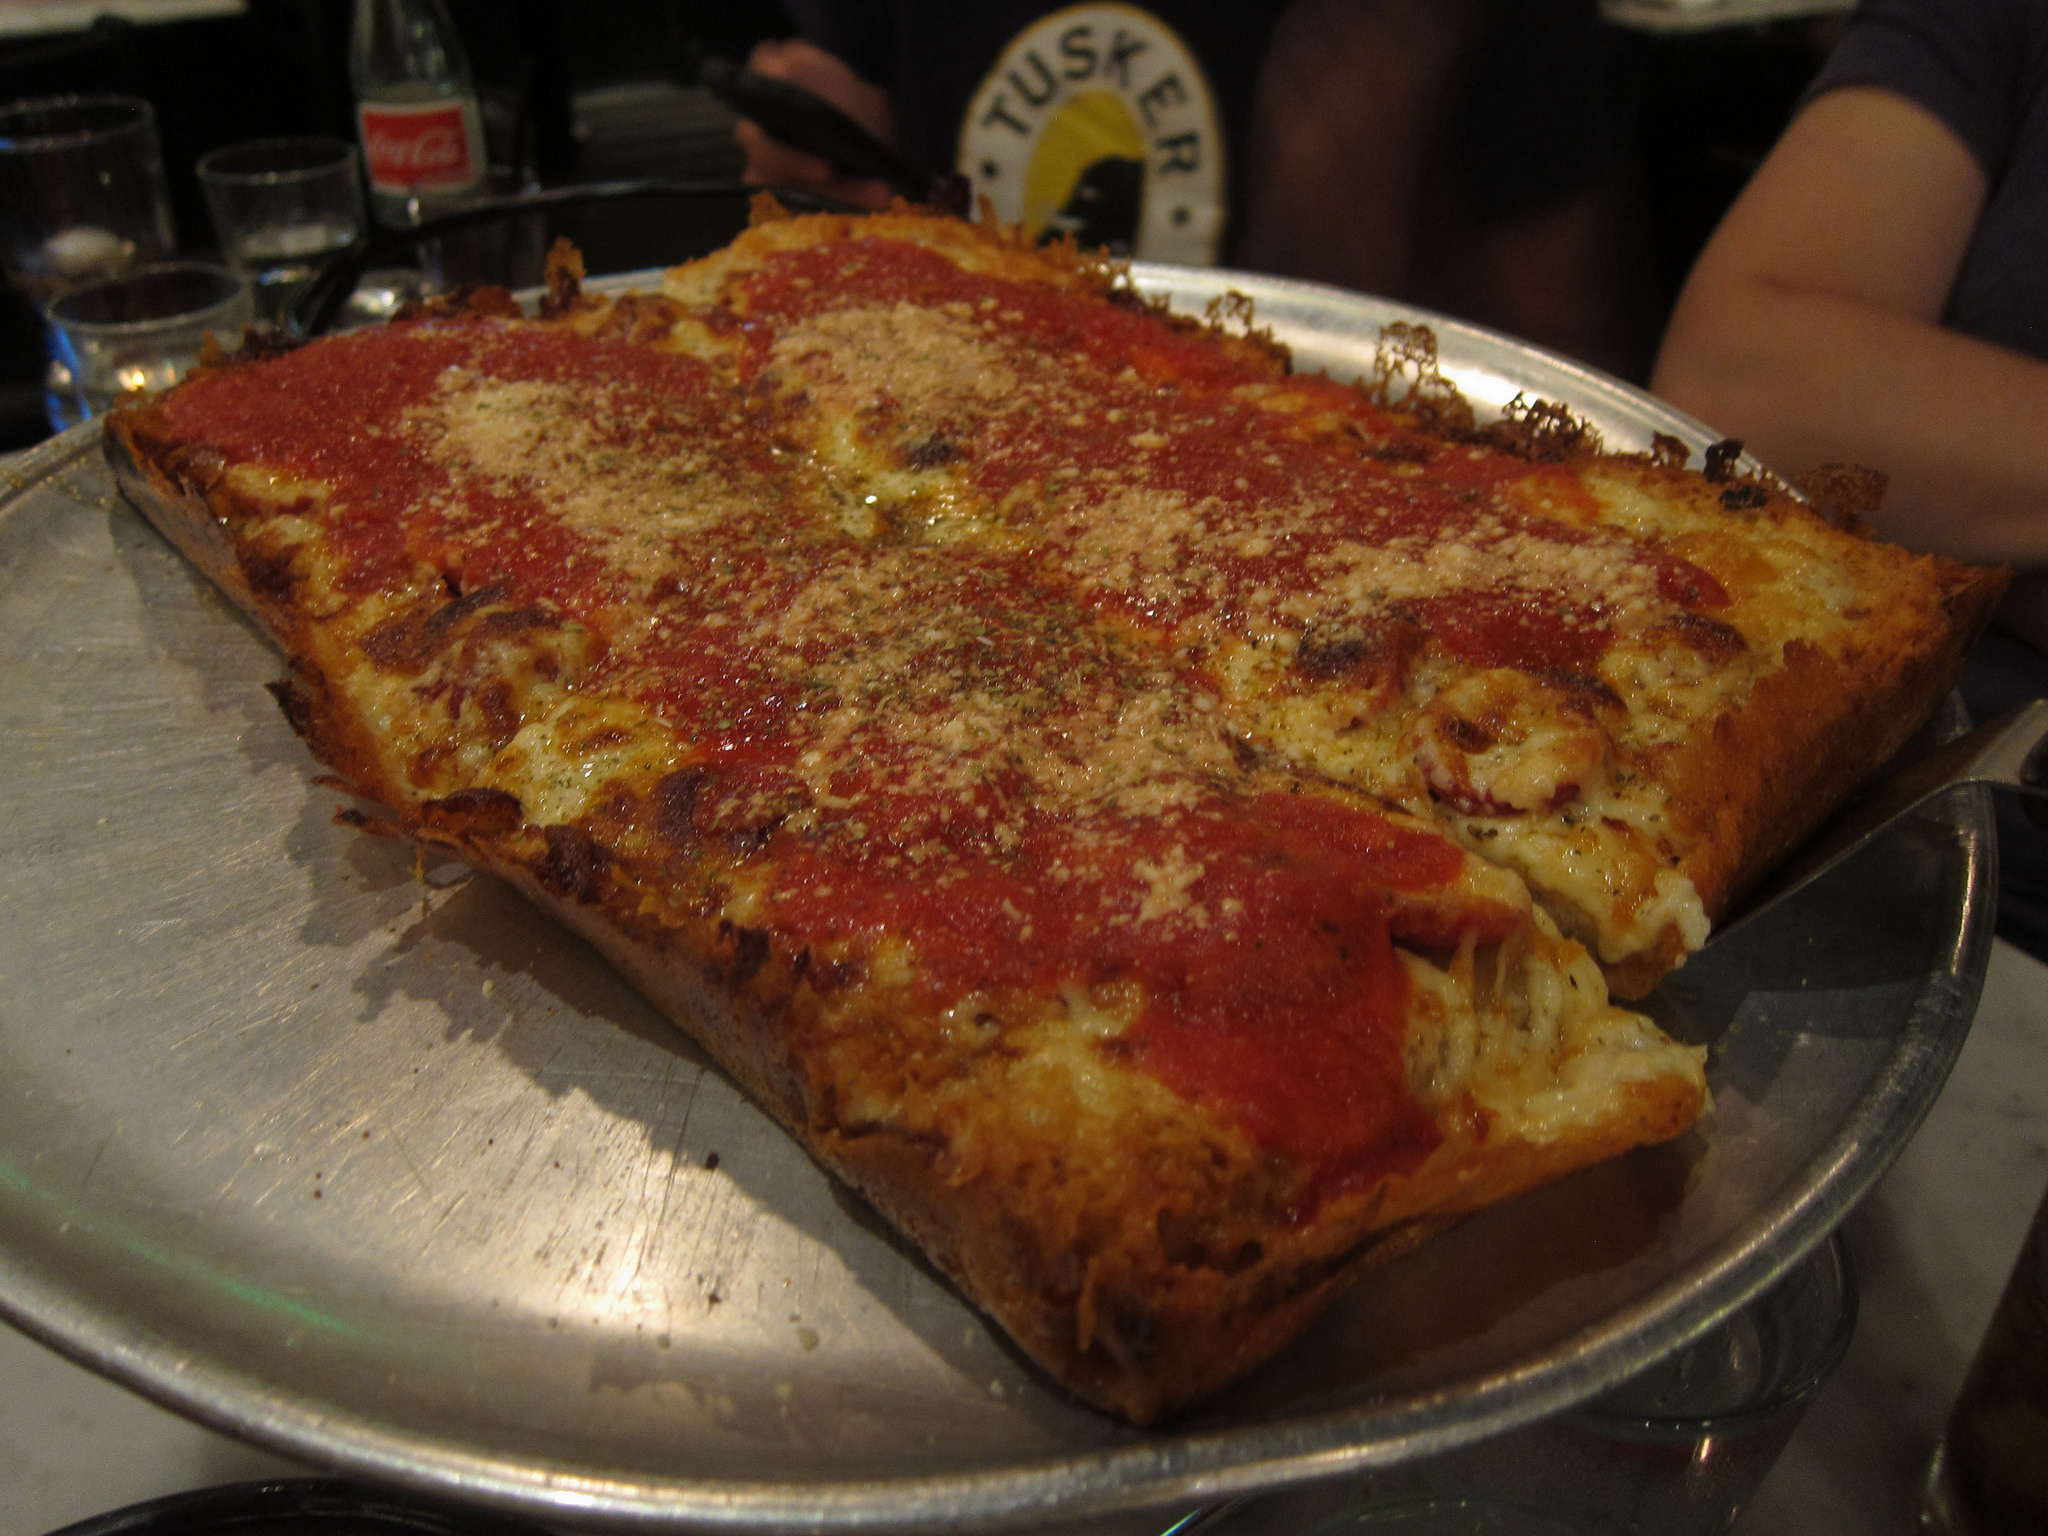 Pizza from Tony's Pizza. Daniel Zemans / Flickr.